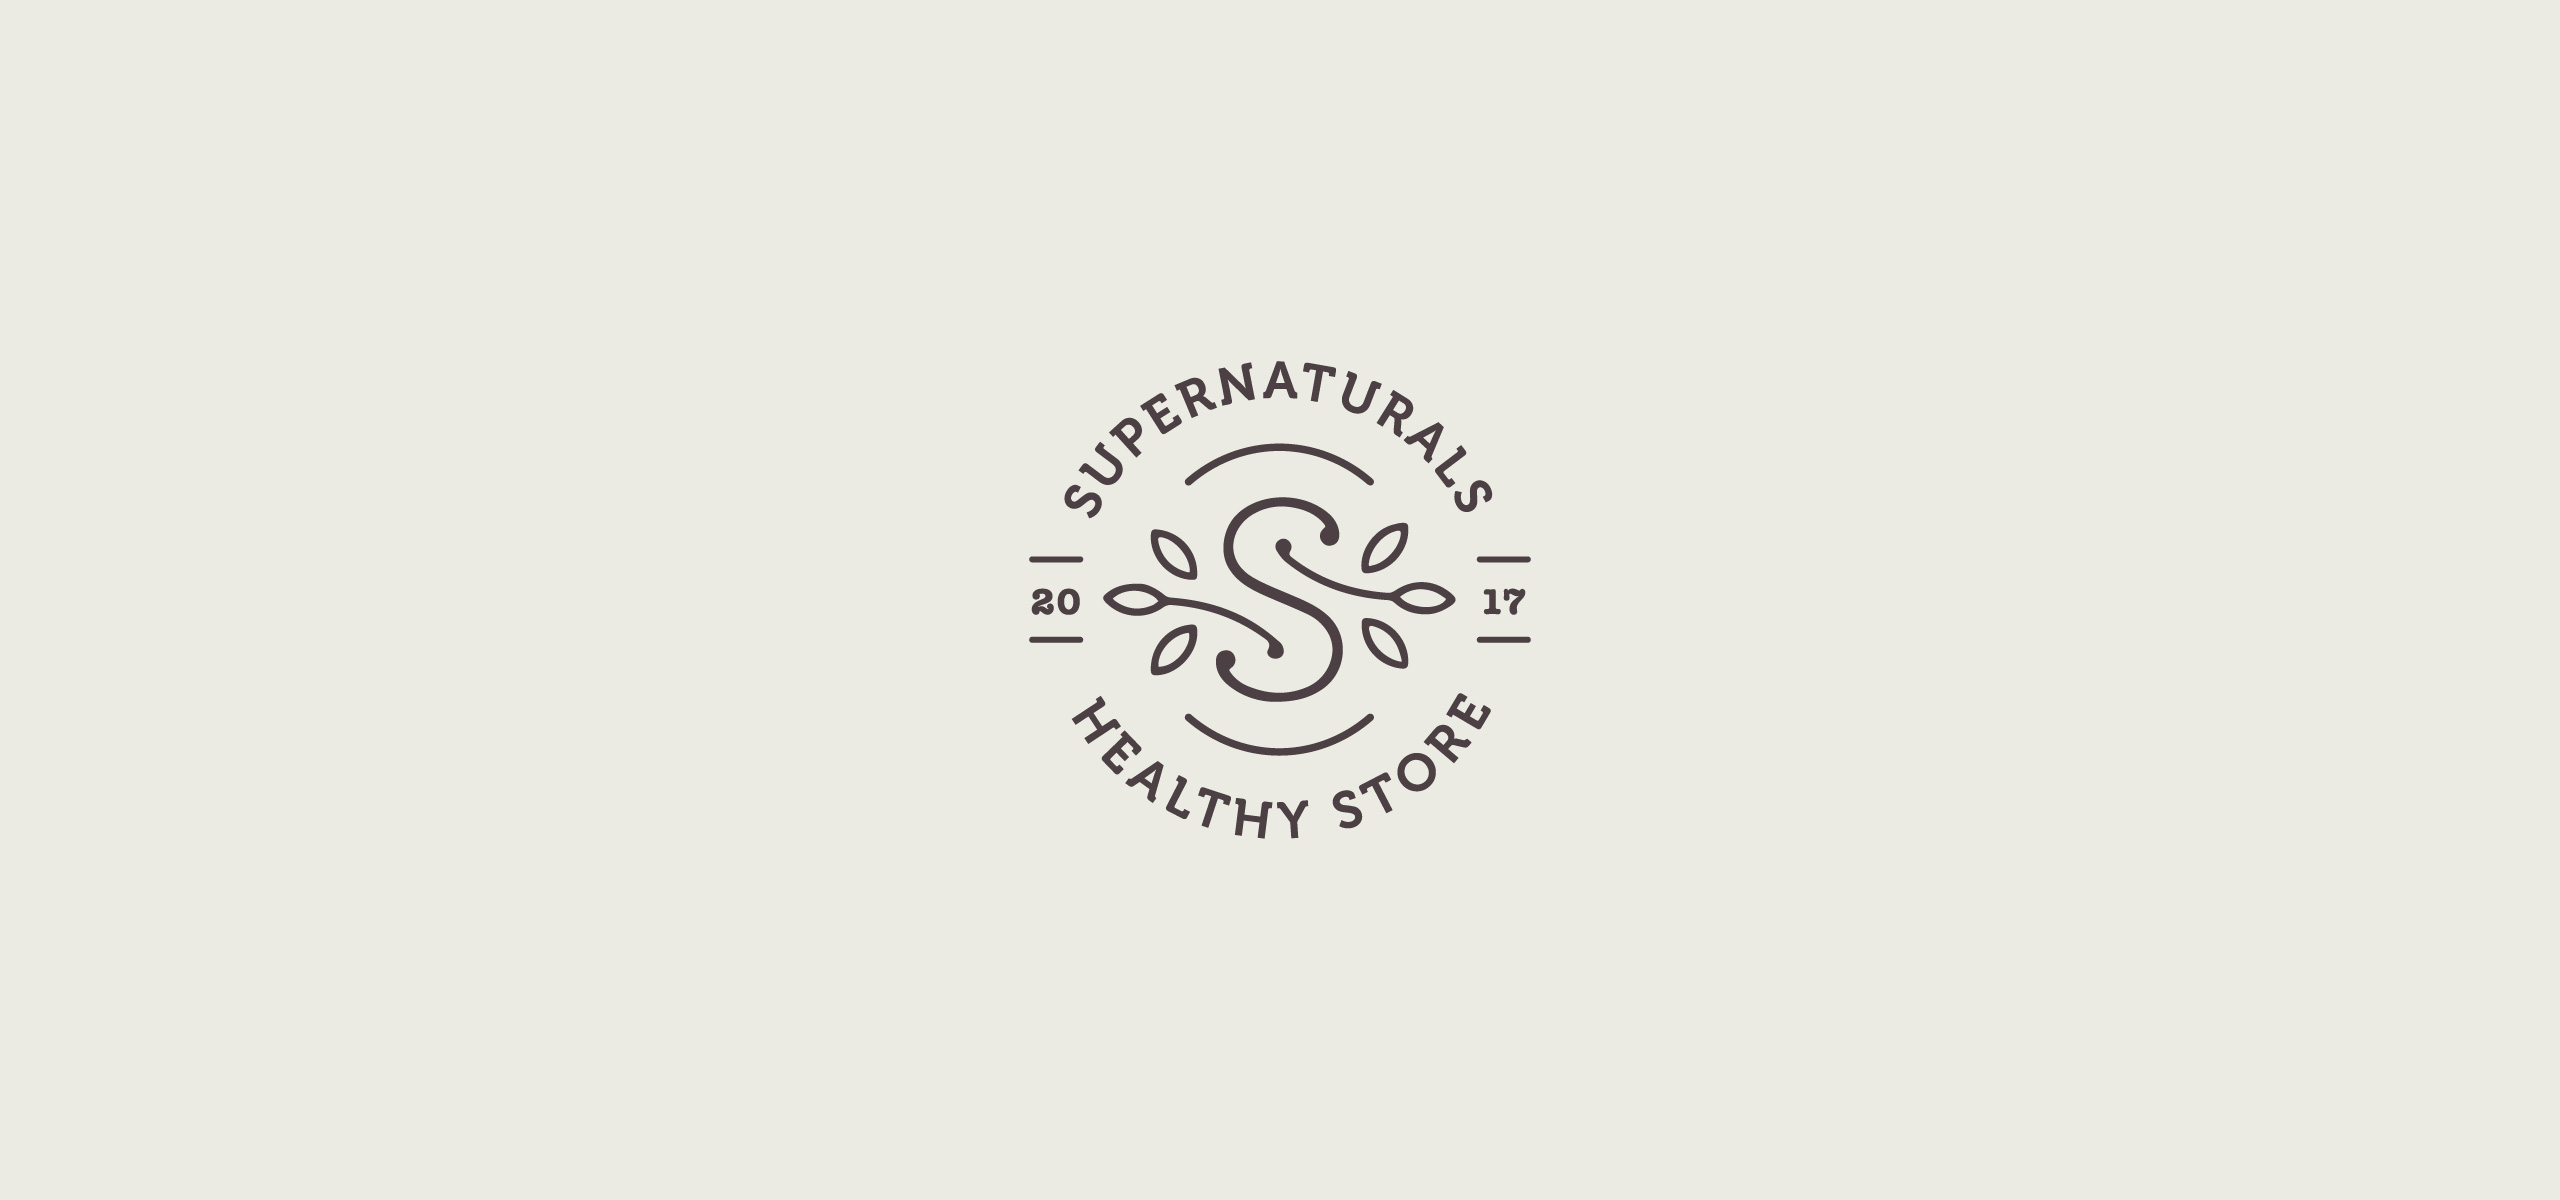 Supernaturals Health Grocery Store Located in Bangkok, Thailand